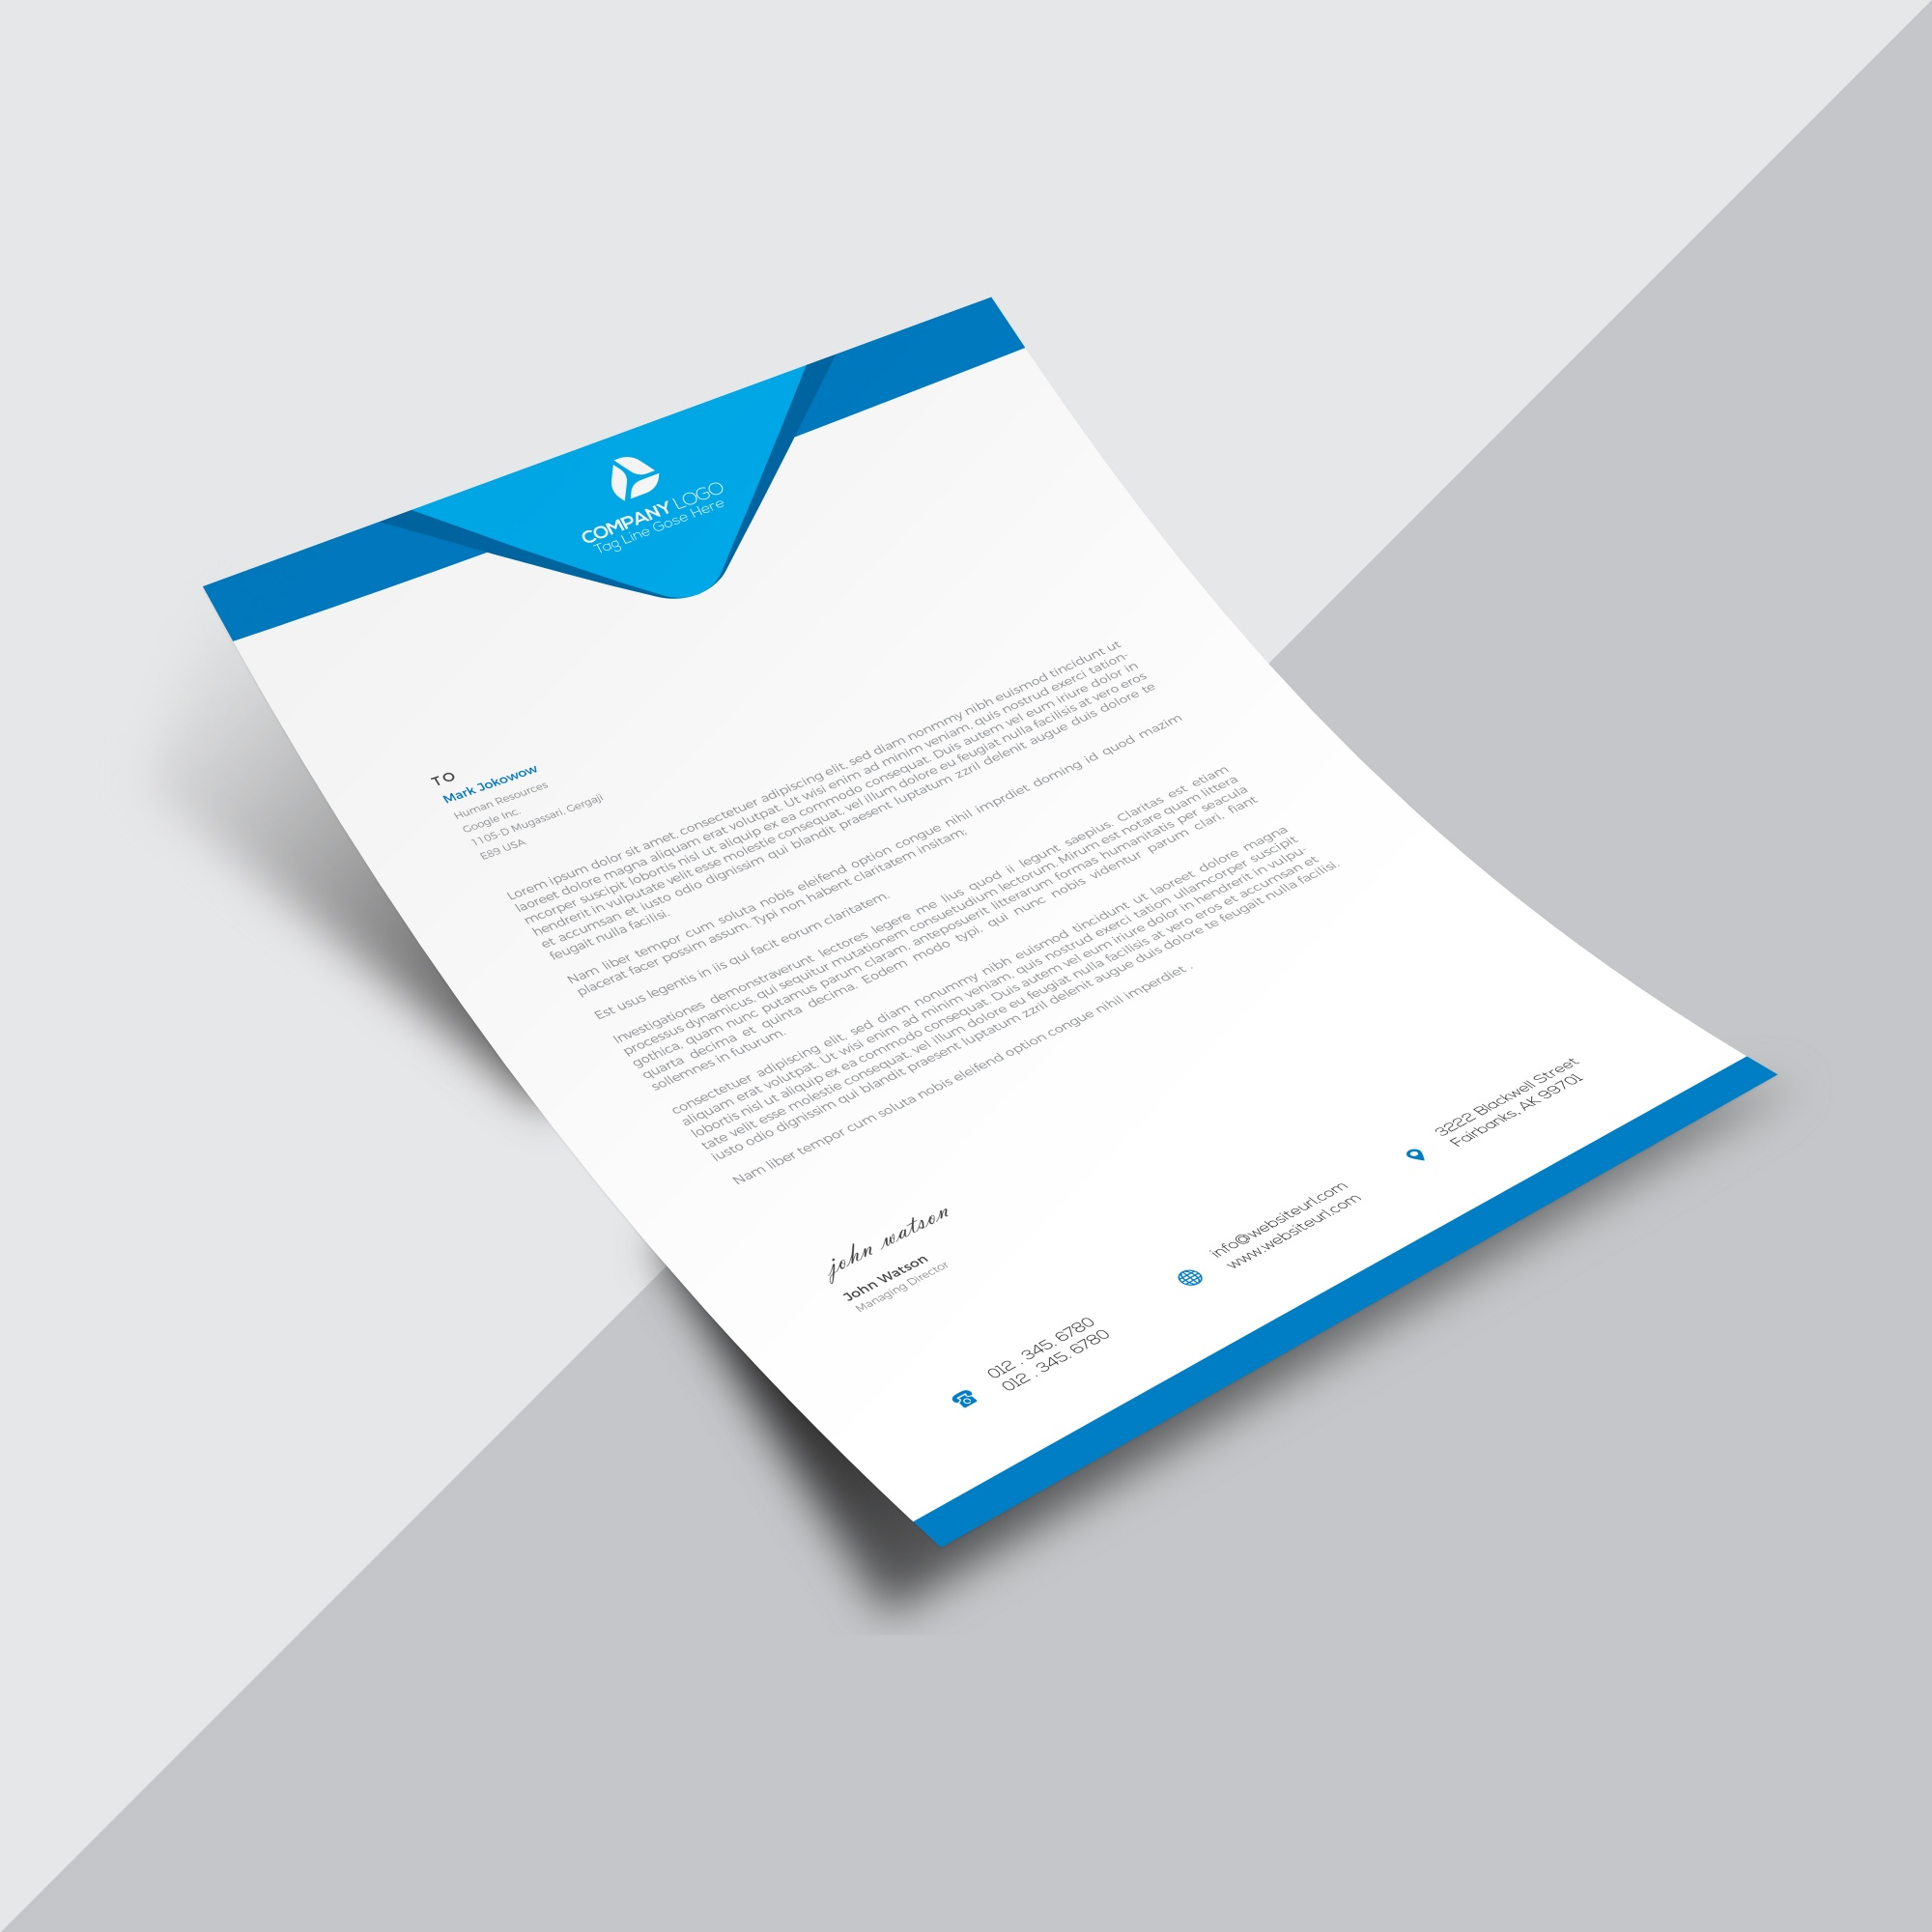 Blue and white business document